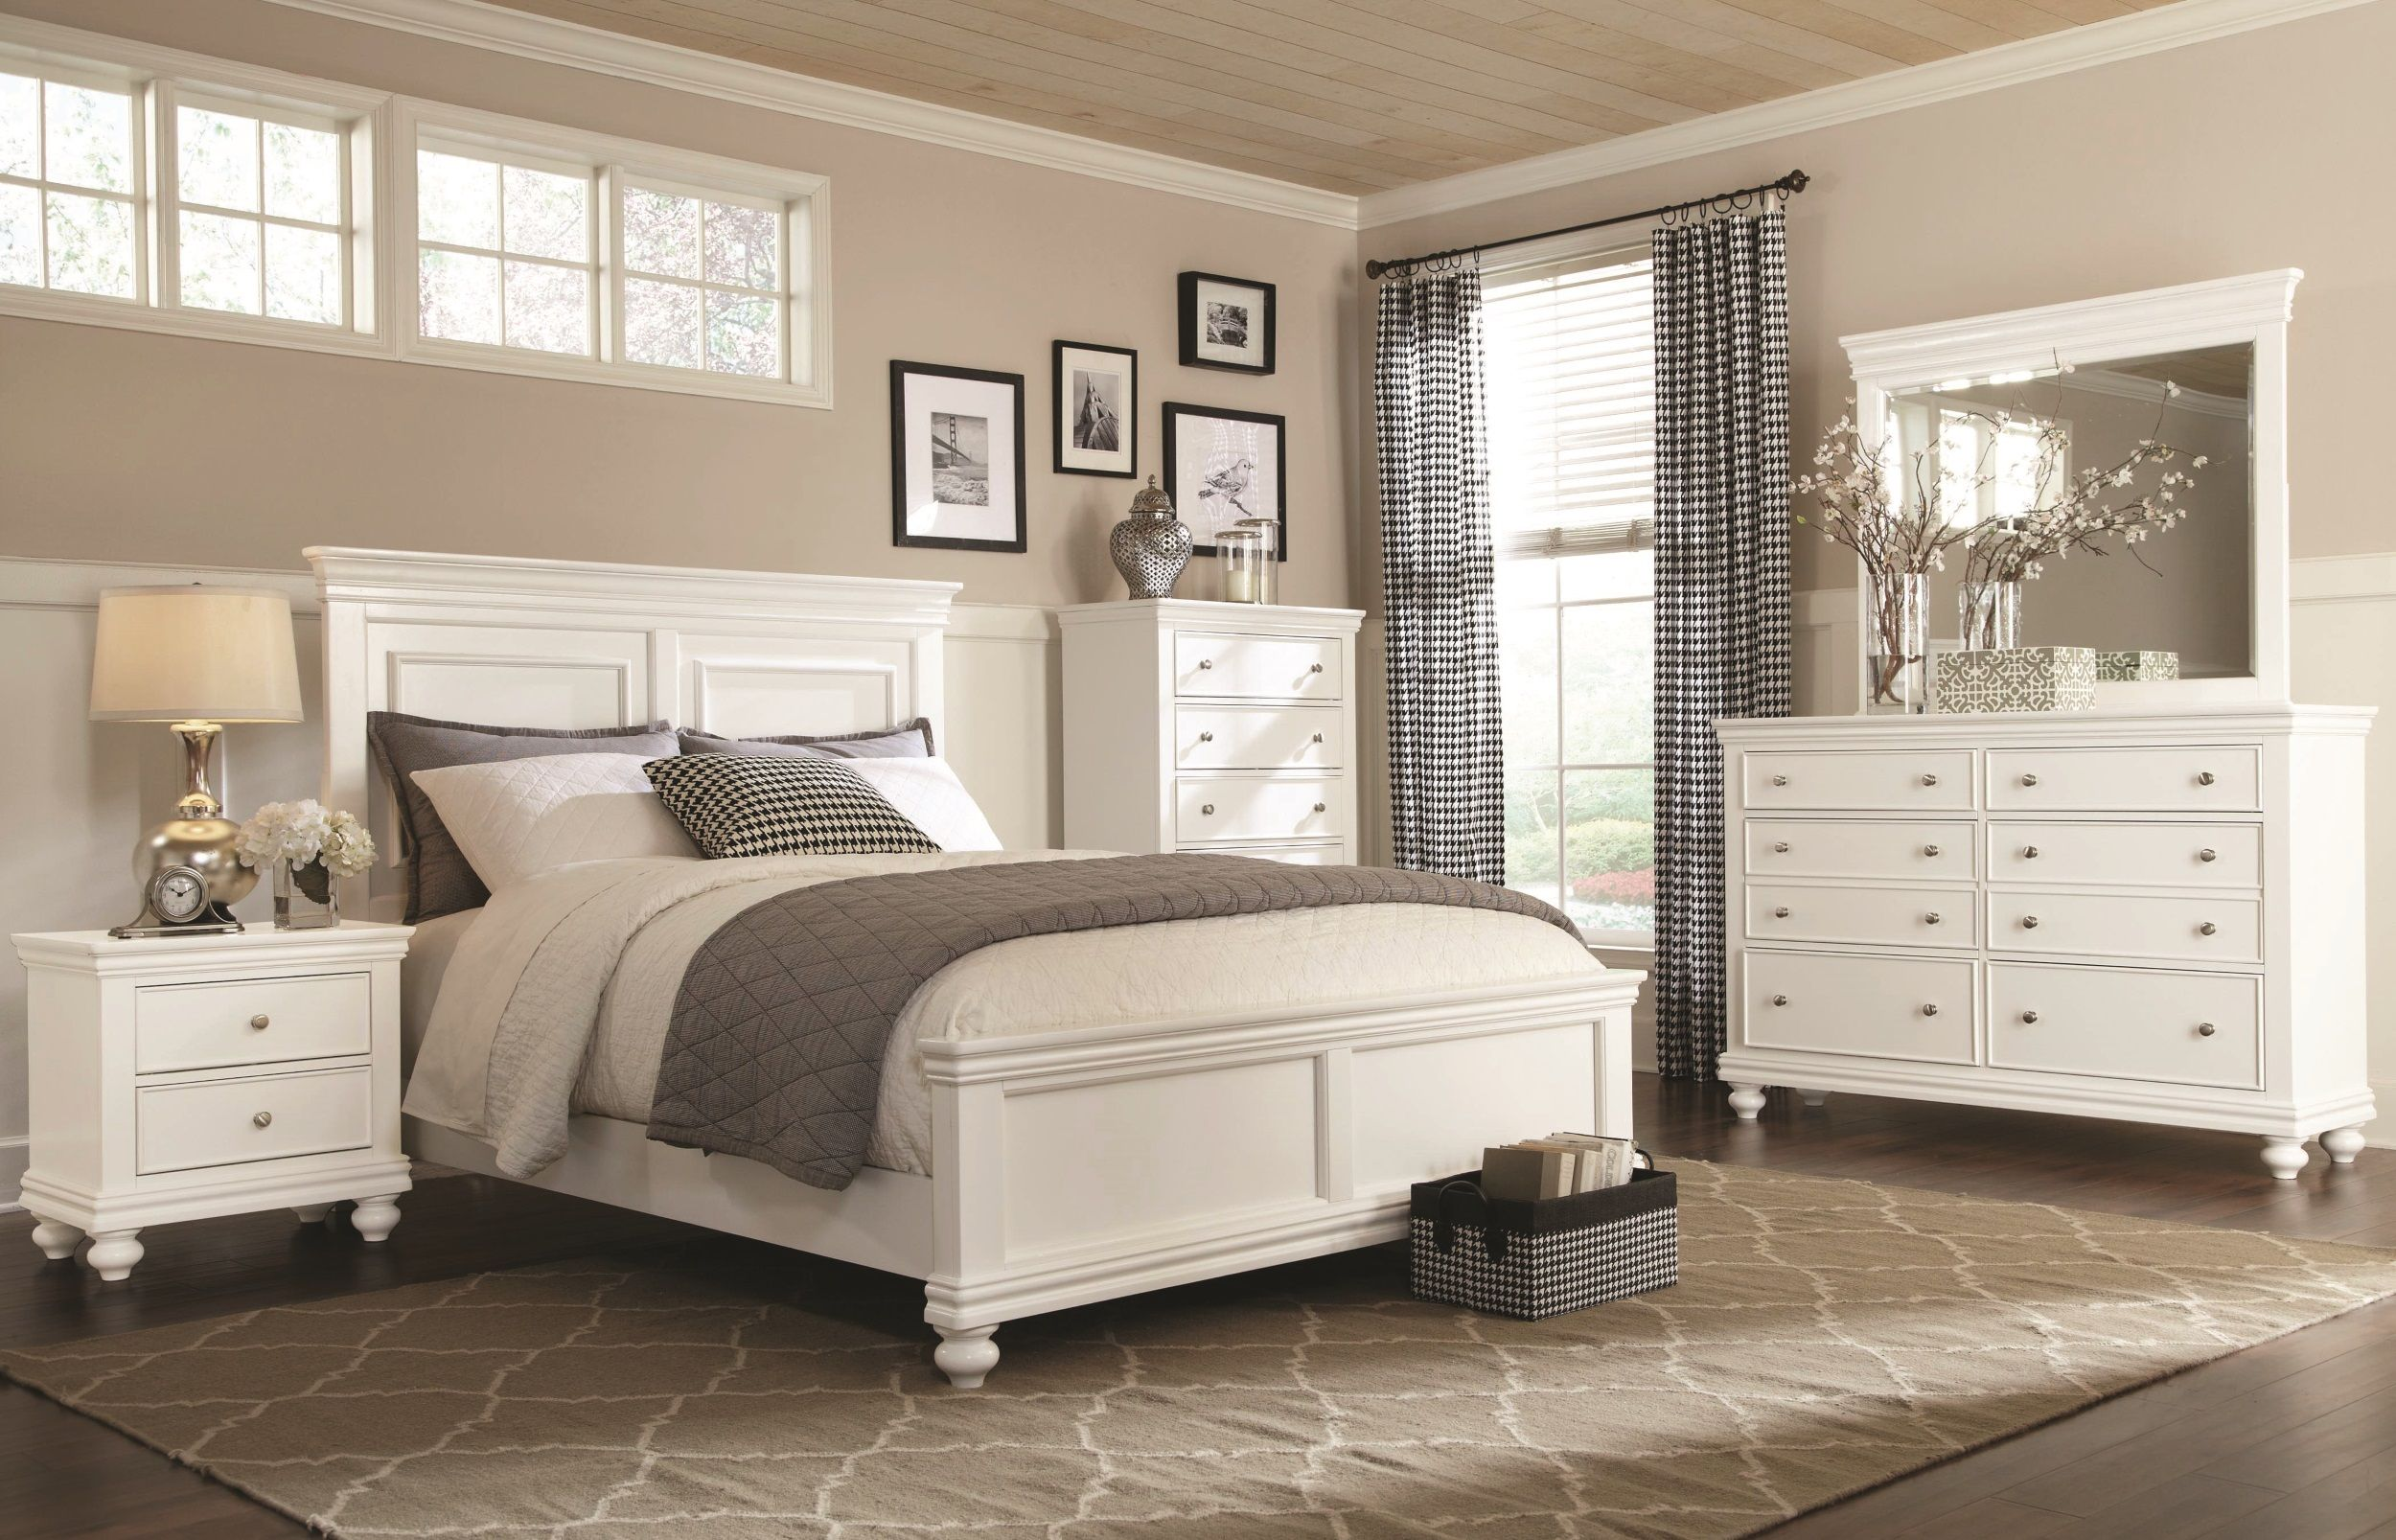 Best 25 white bedroom furniture sets ideas on pinterest - White vintage bedroom furniture sets ...